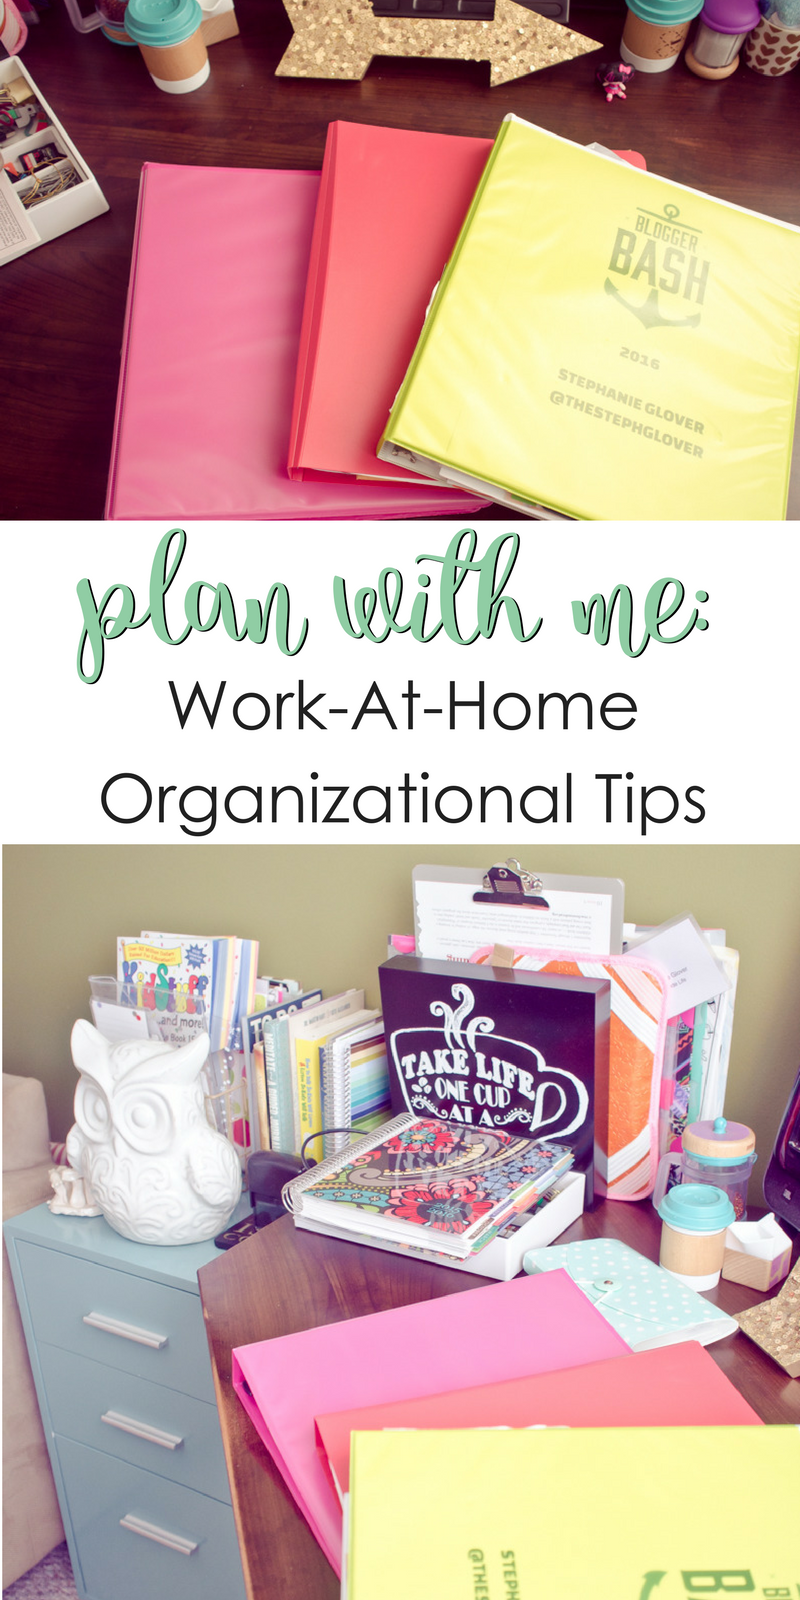 Work-At-Home Organizational Tips